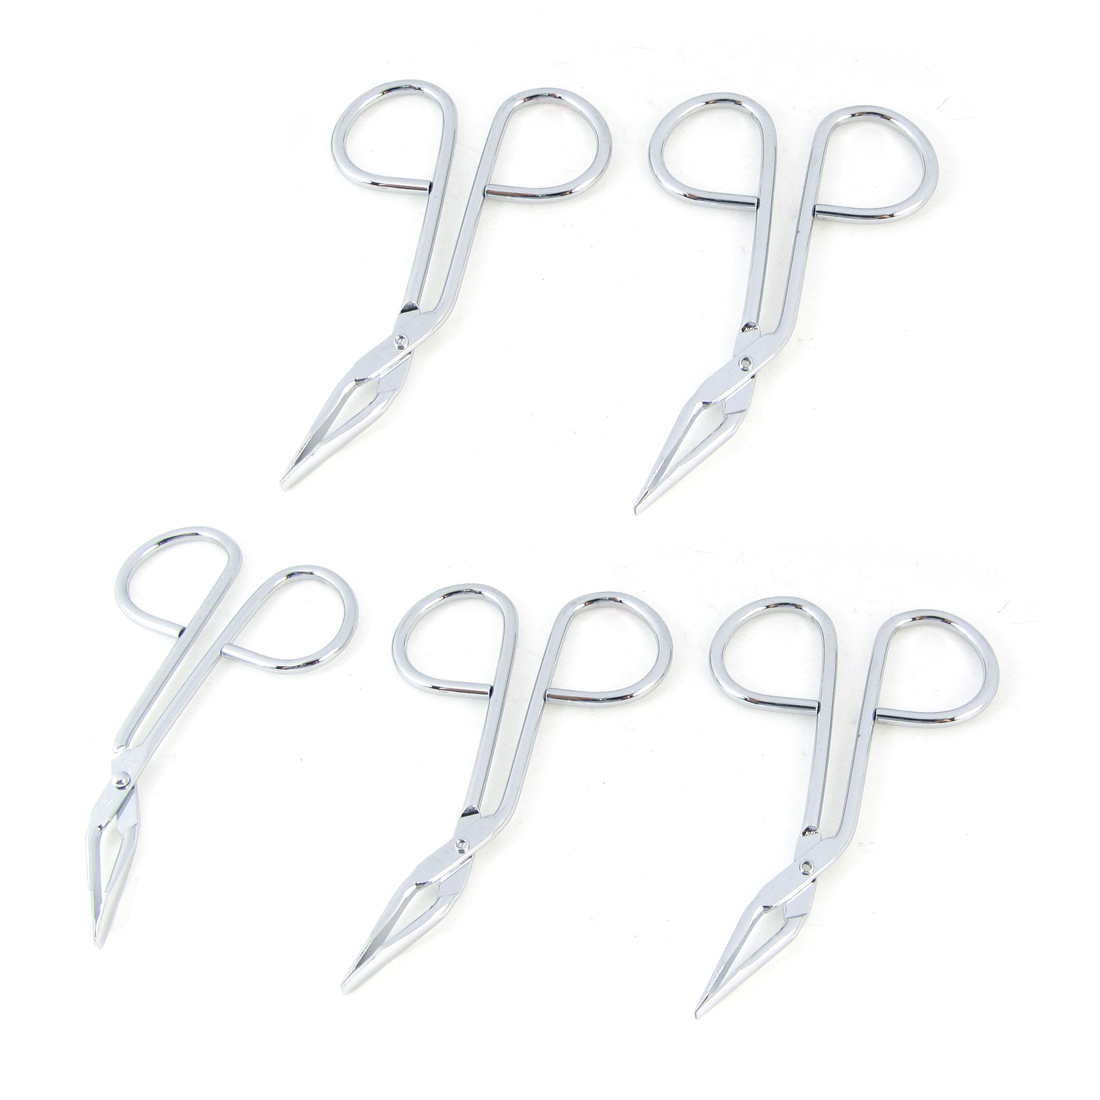 5 Pcs Silver Tone Eyebrow Scissors Trimmers Epilation Makeup Tool for Women